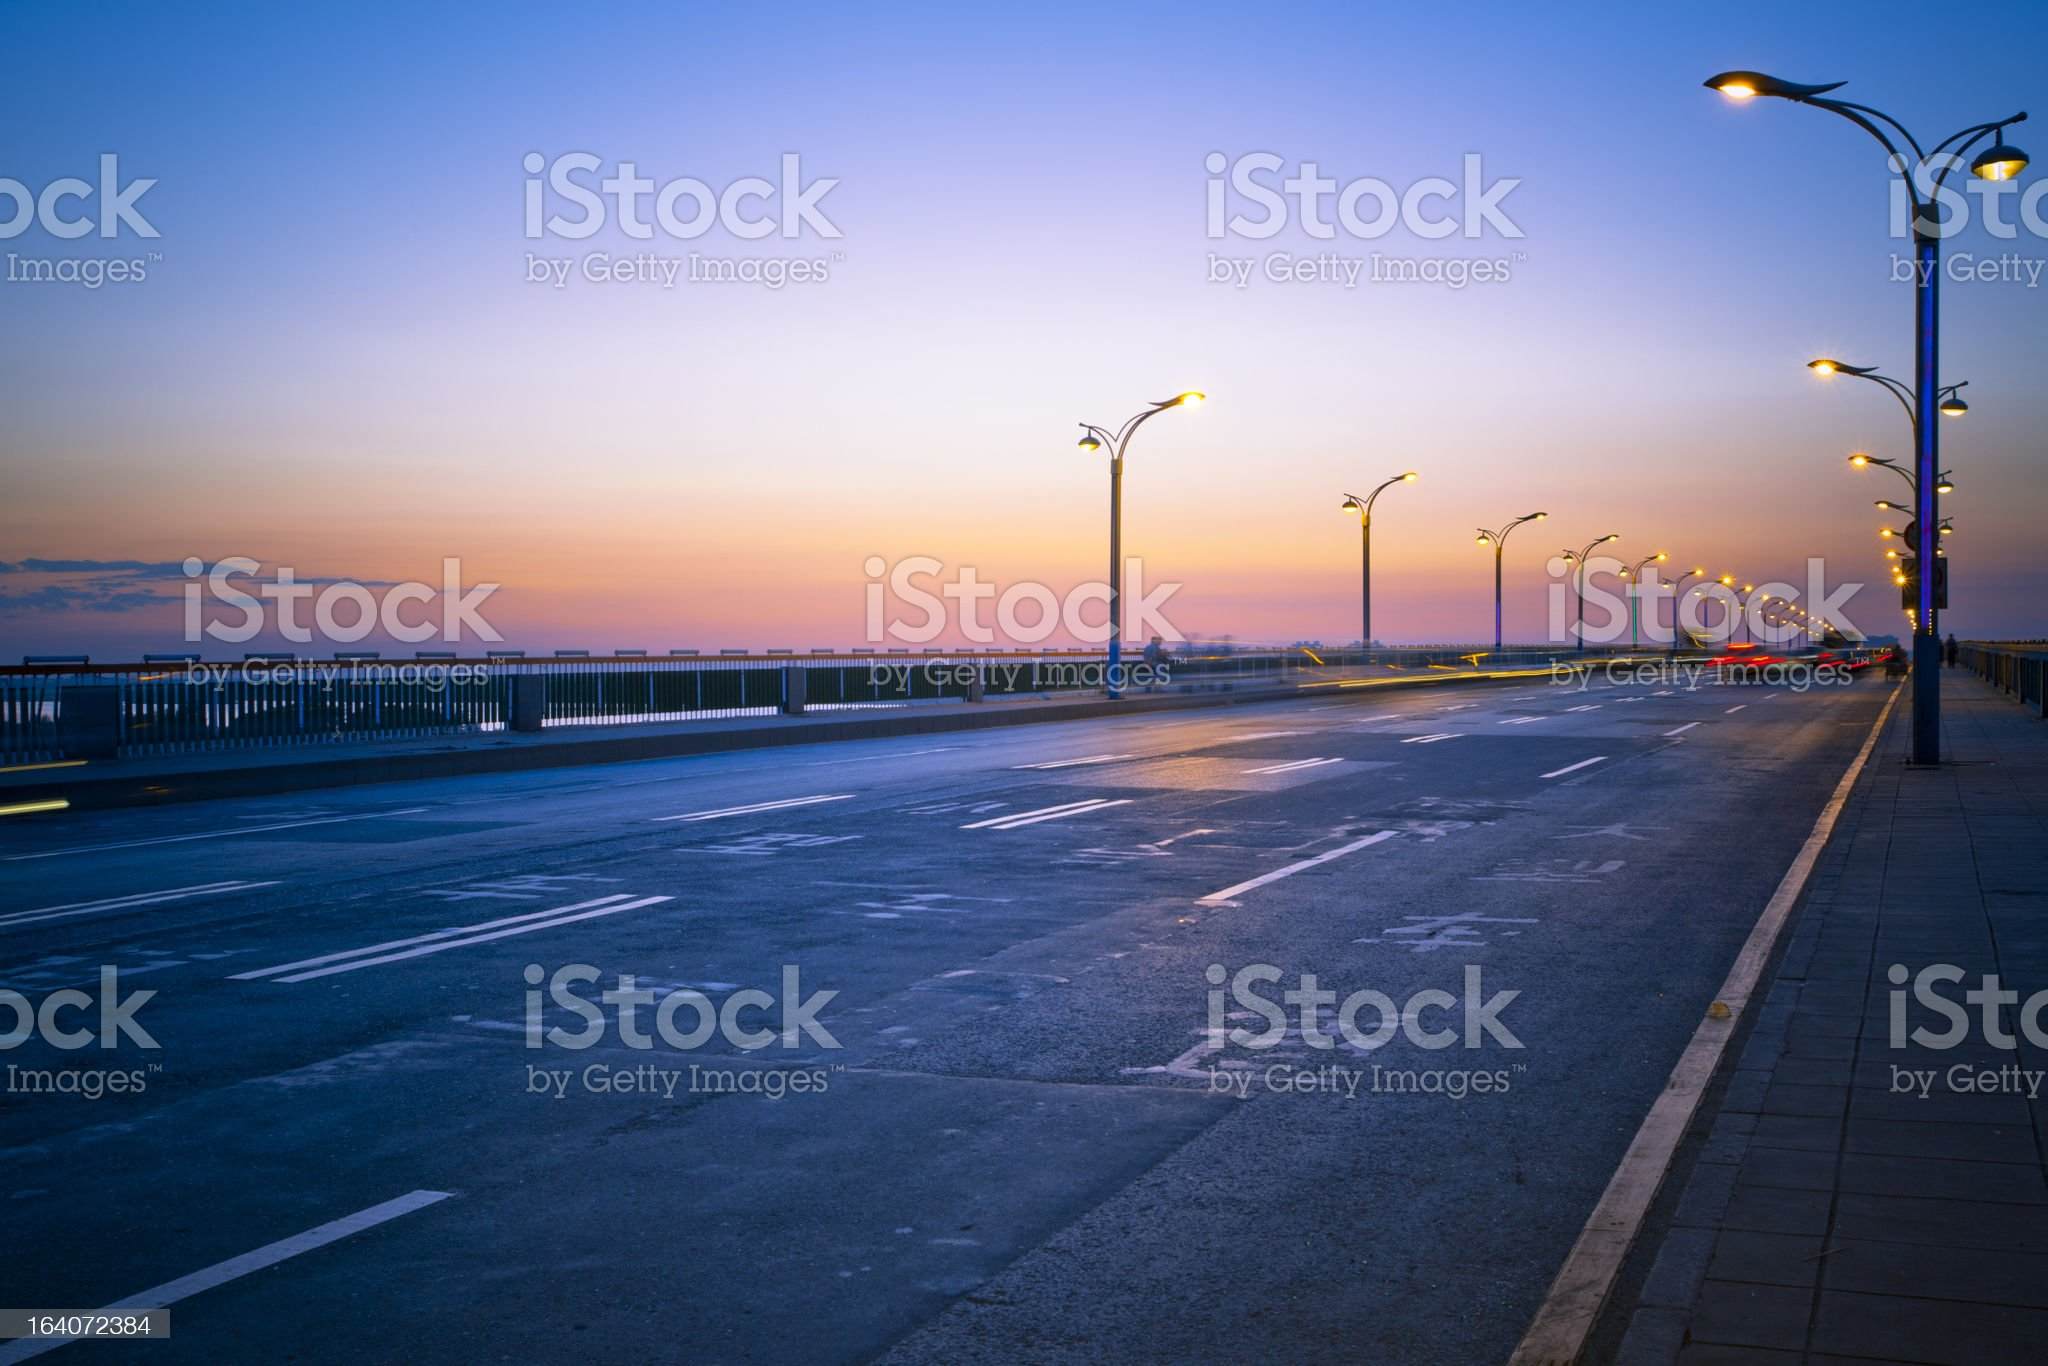 A bridge at night with lights on royalty-free stock photo